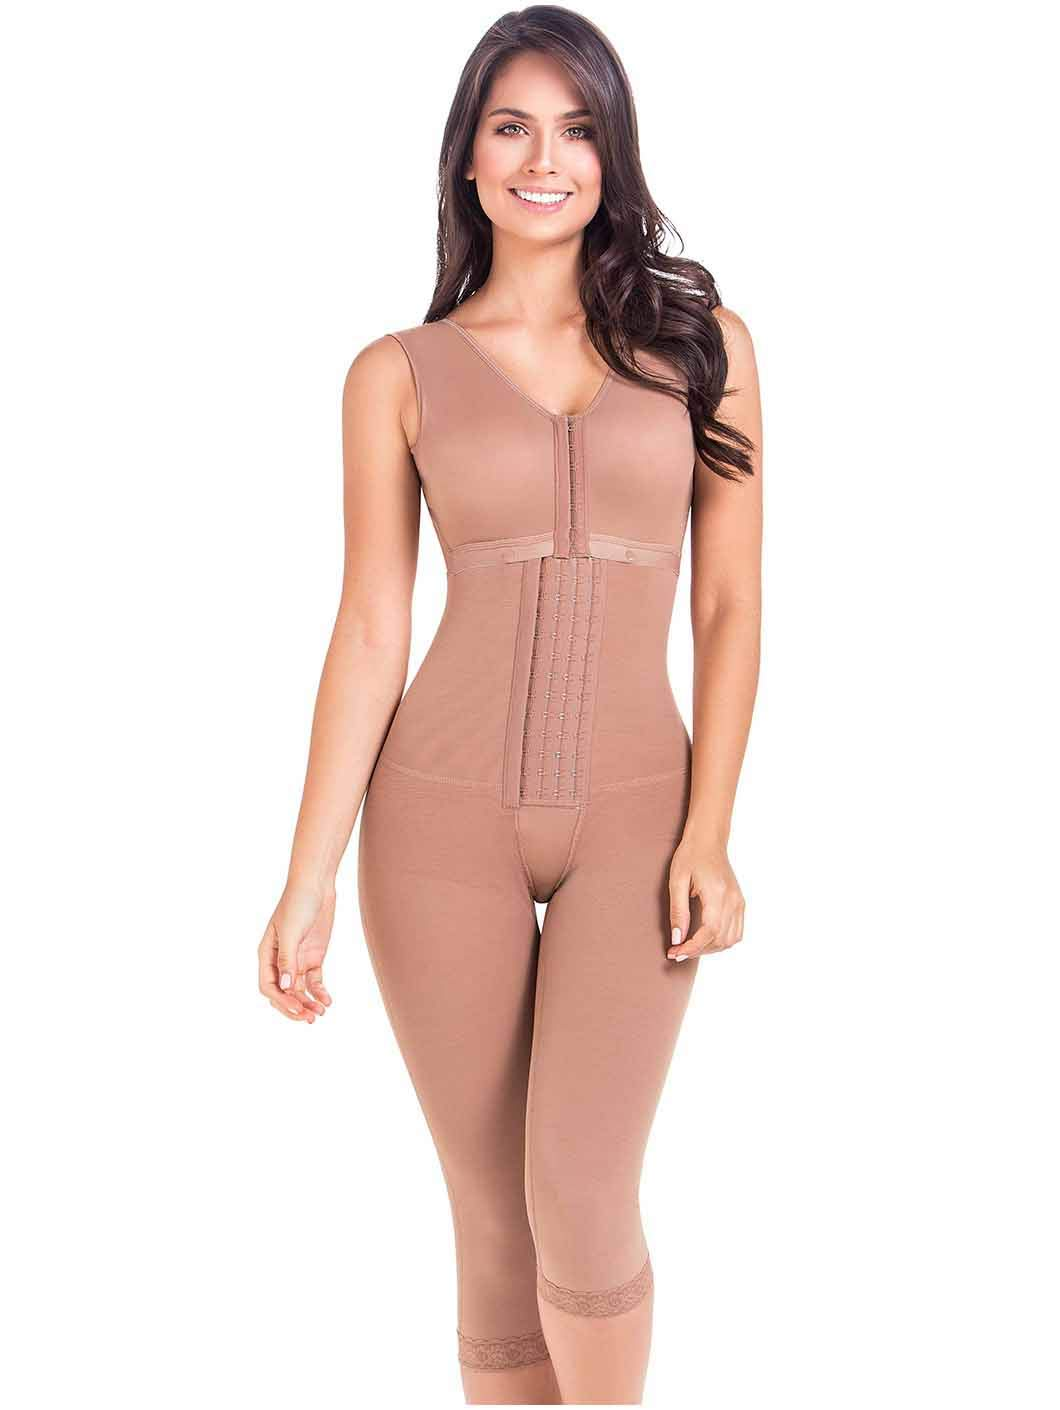 MARIAE 9262 Fajas Colombianas Reductoras Full Body Shaper Postoperative Girdles